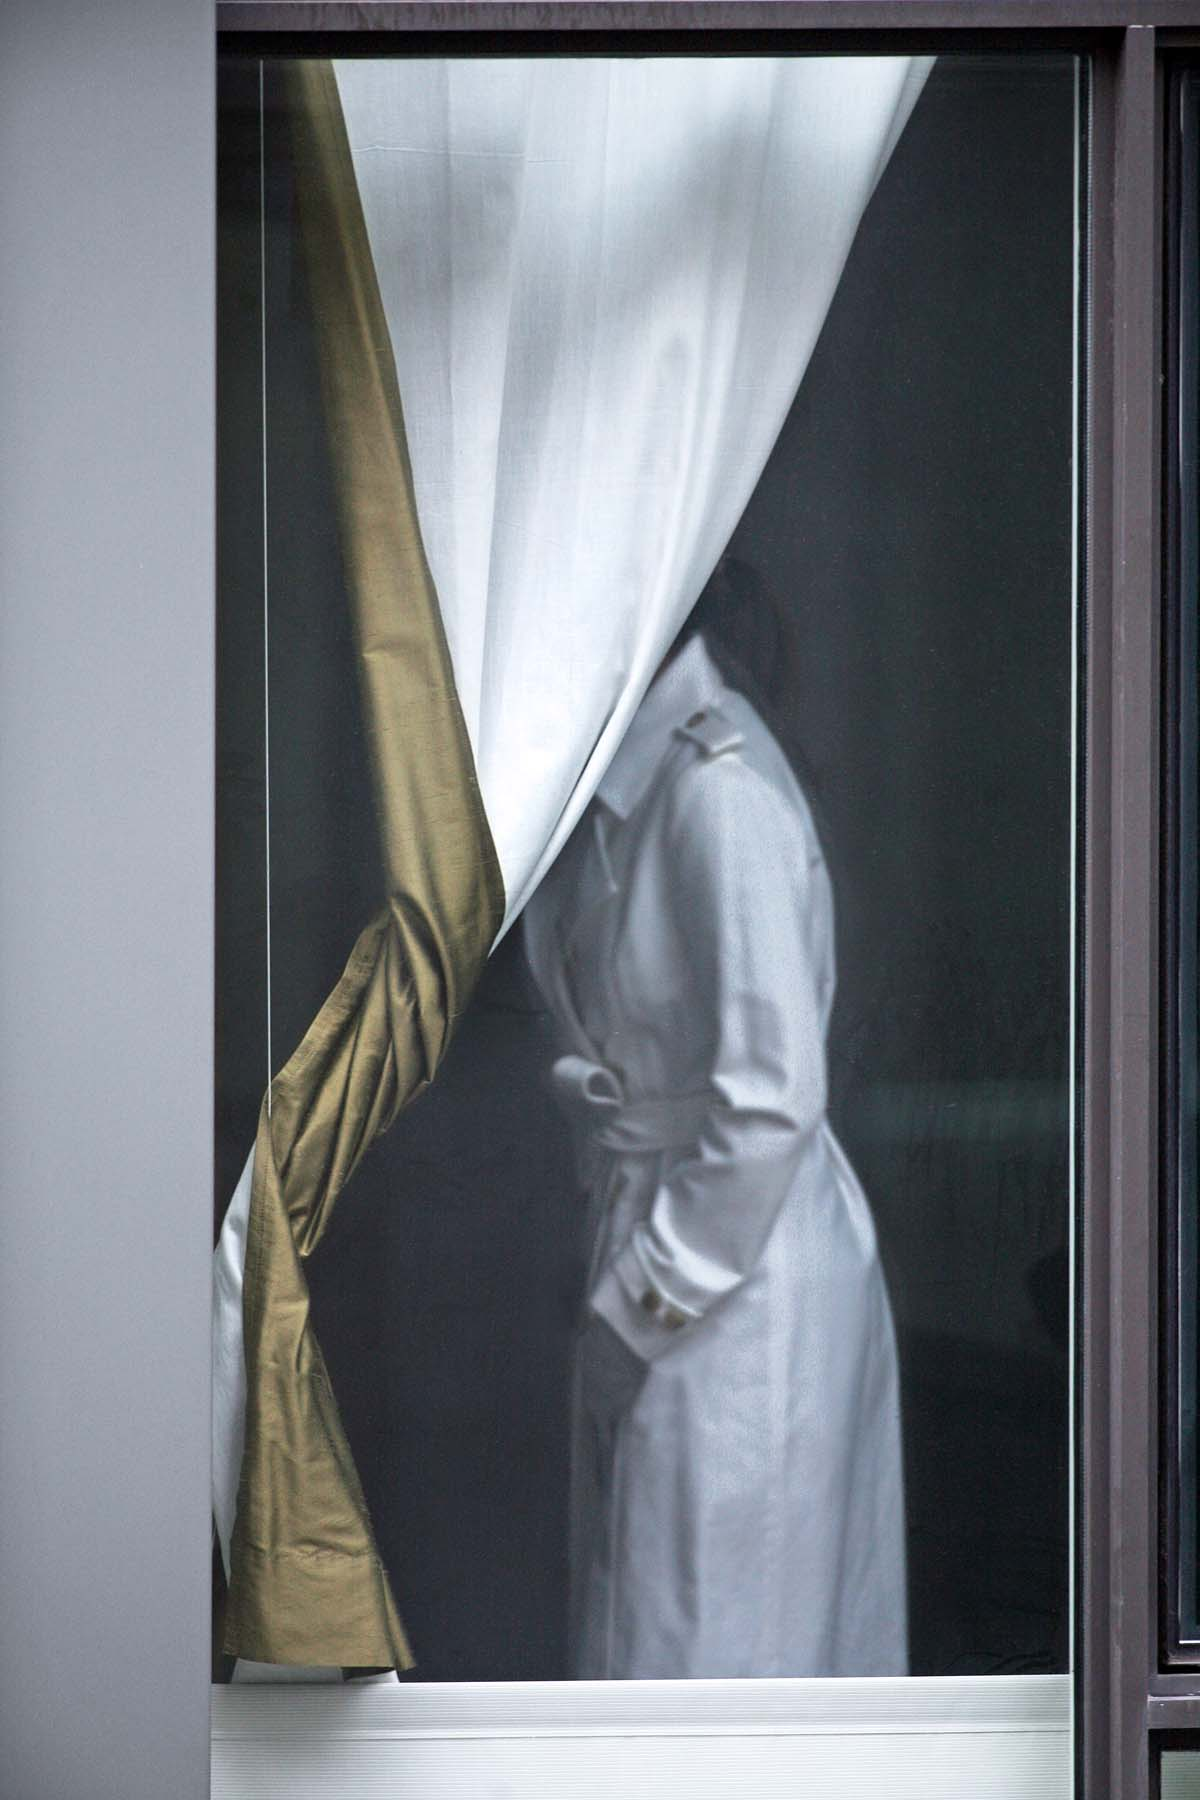 Arne Svenson, The Neighbors #28, 2012, pigment print, 45 x 30 inches